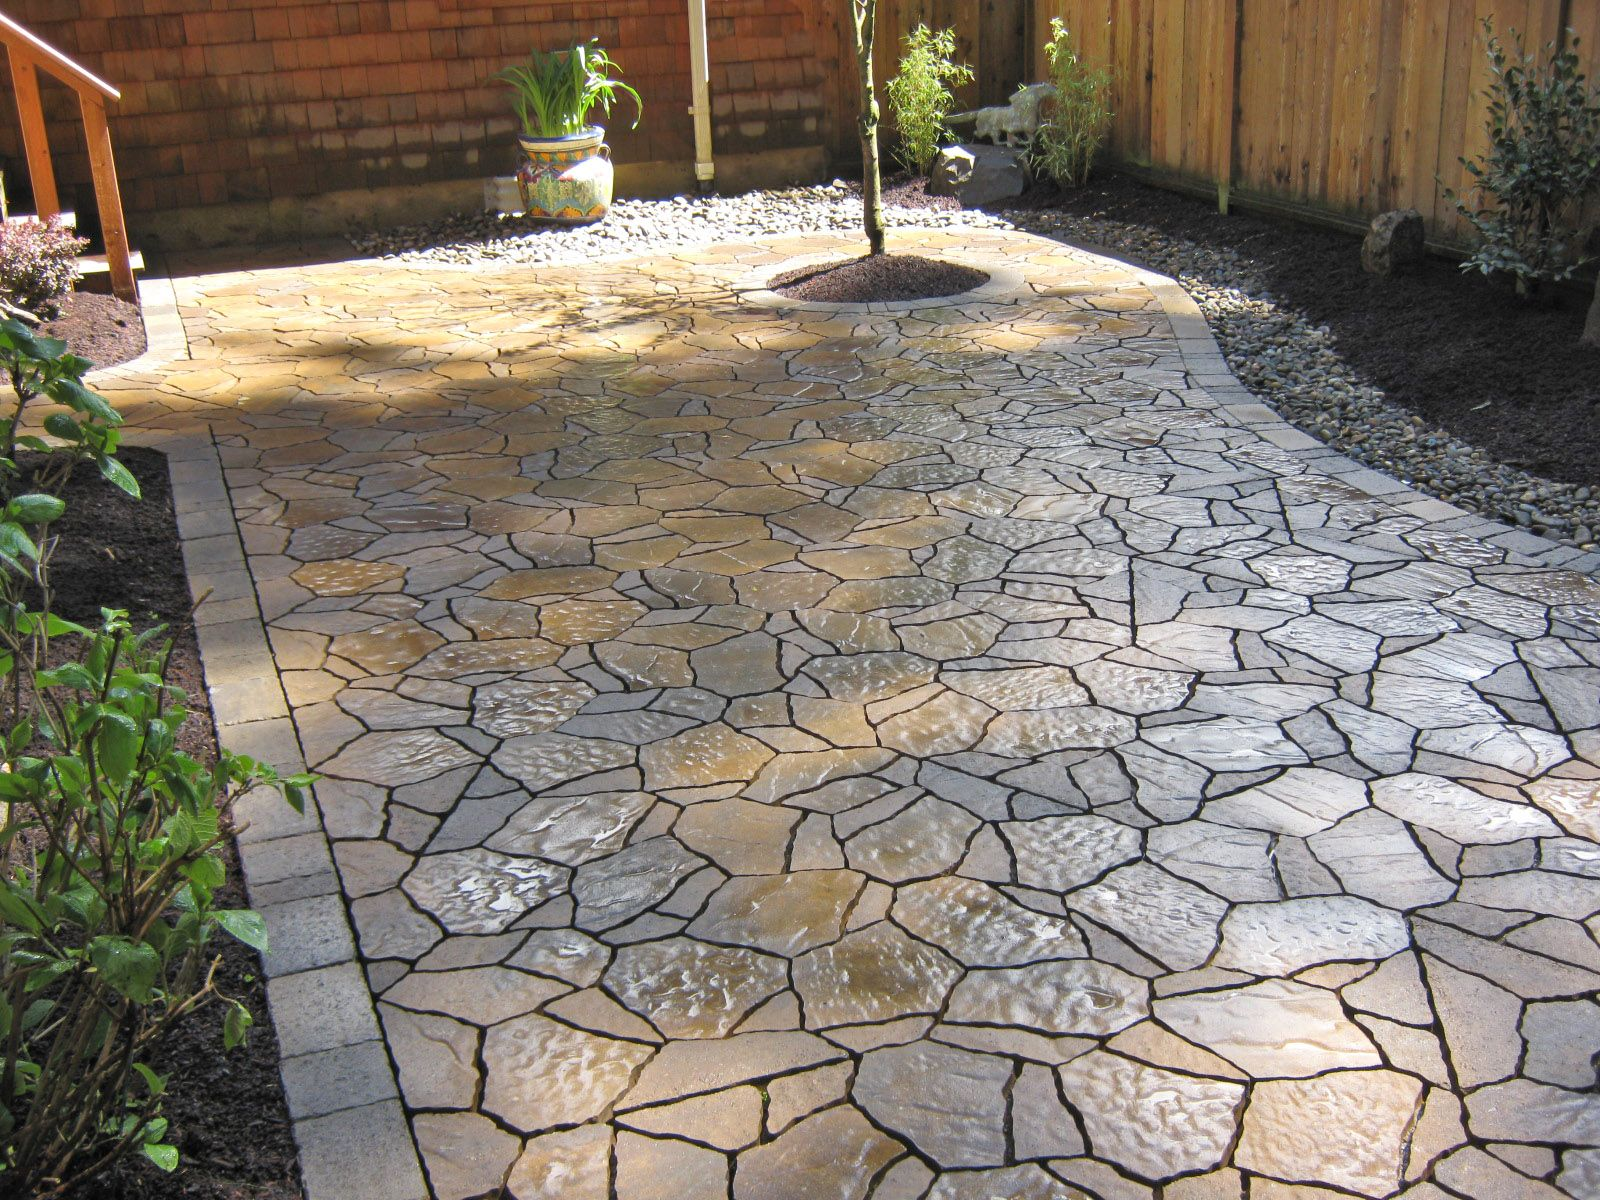 Stone patio ideas landscape archives dennis 39 7 dees for Paving garden designs